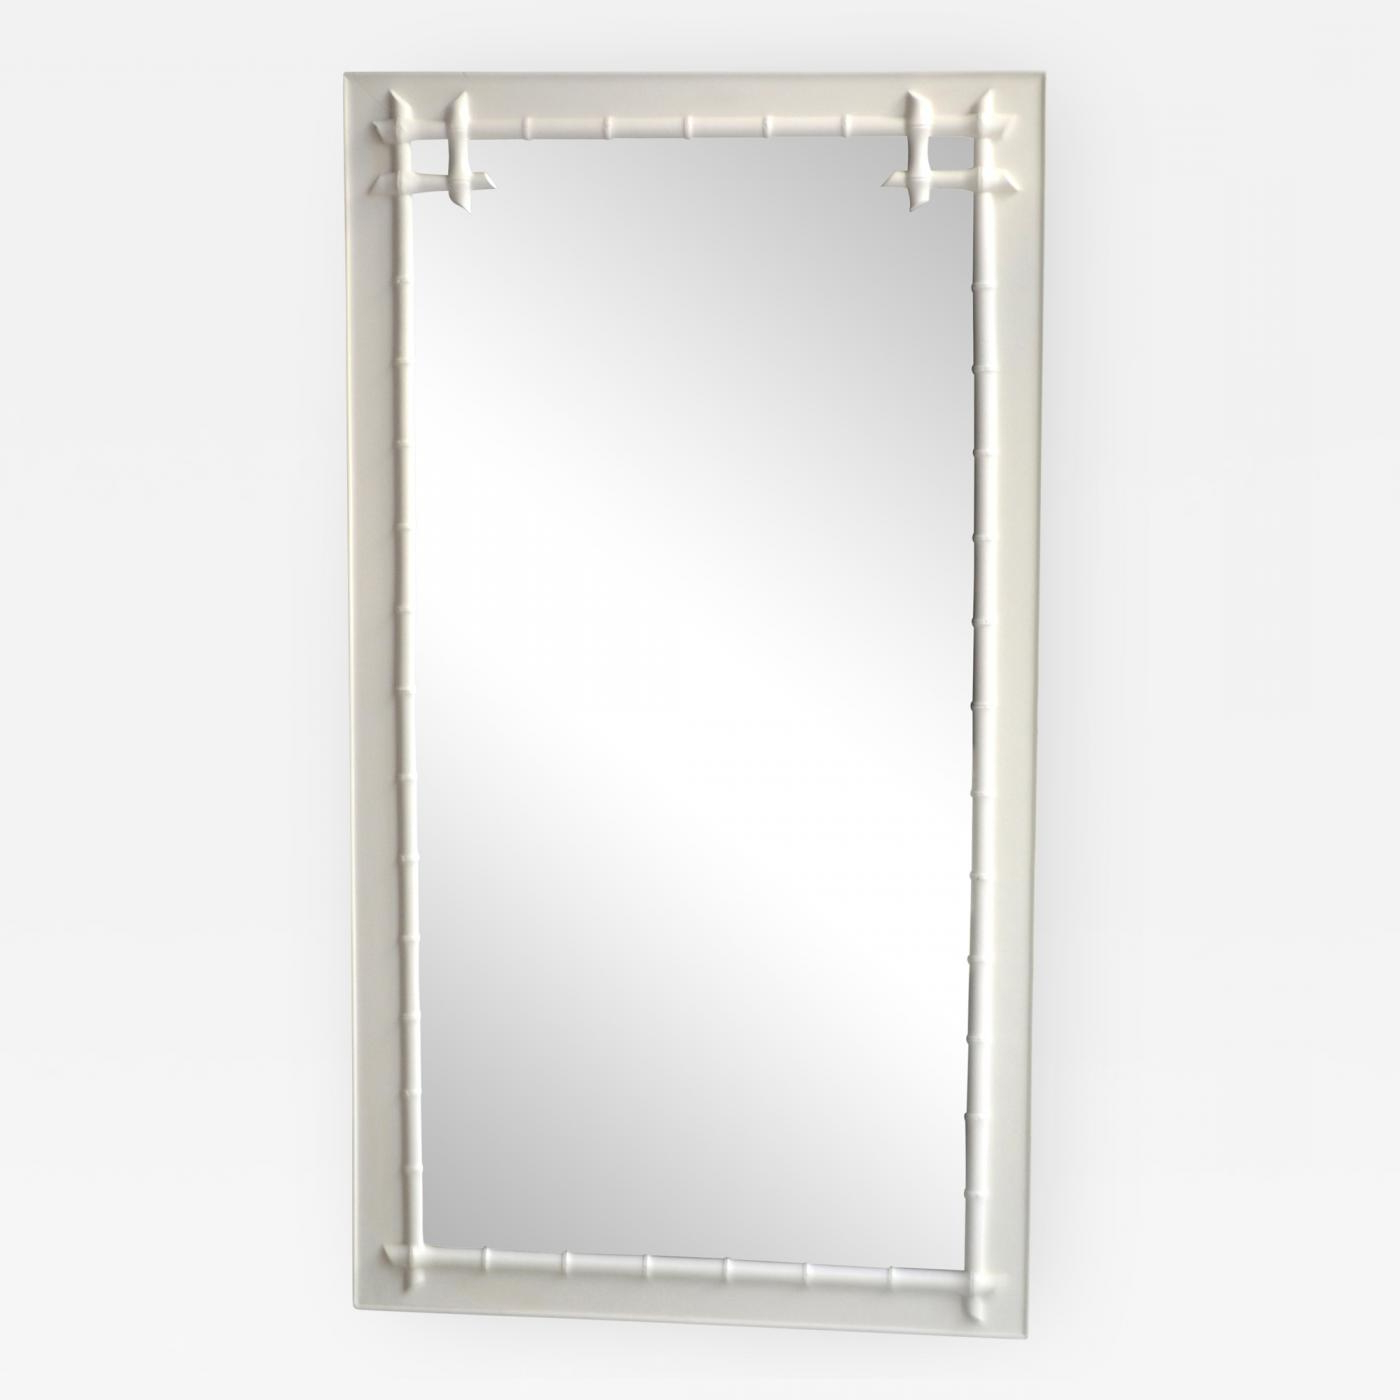 Fashionable Bamboo Wall Mirrors Pertaining To Hollywood Regency Style Faux Bamboo Wall Mirror (View 18 of 20)